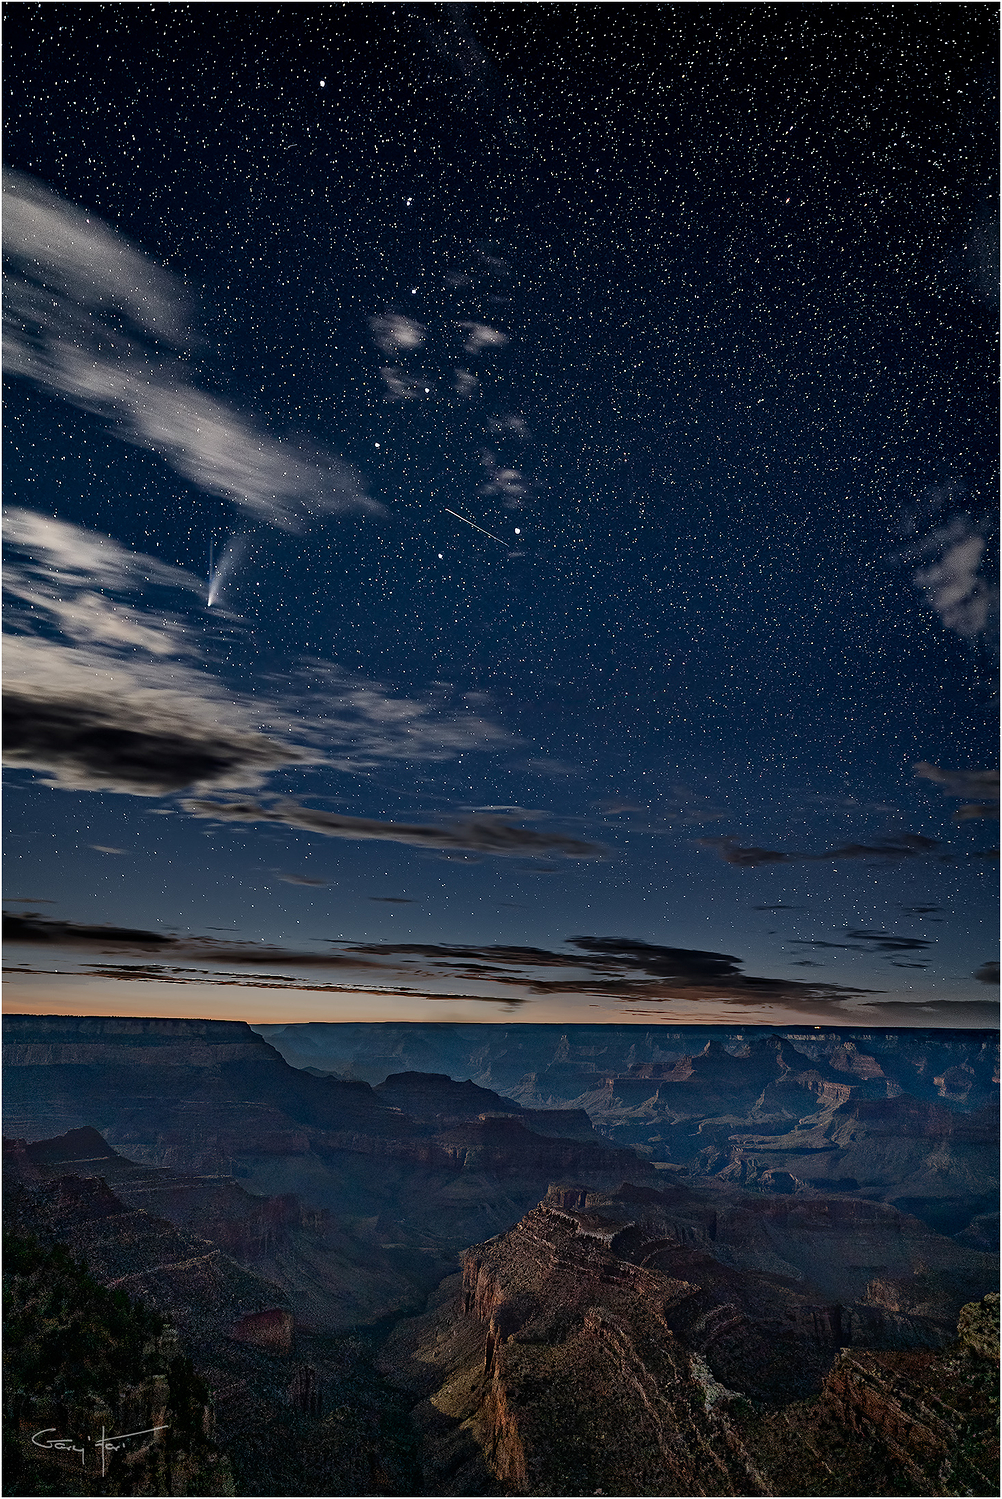 Comet NEOWISE and the Big Dipper, Grand Canyon